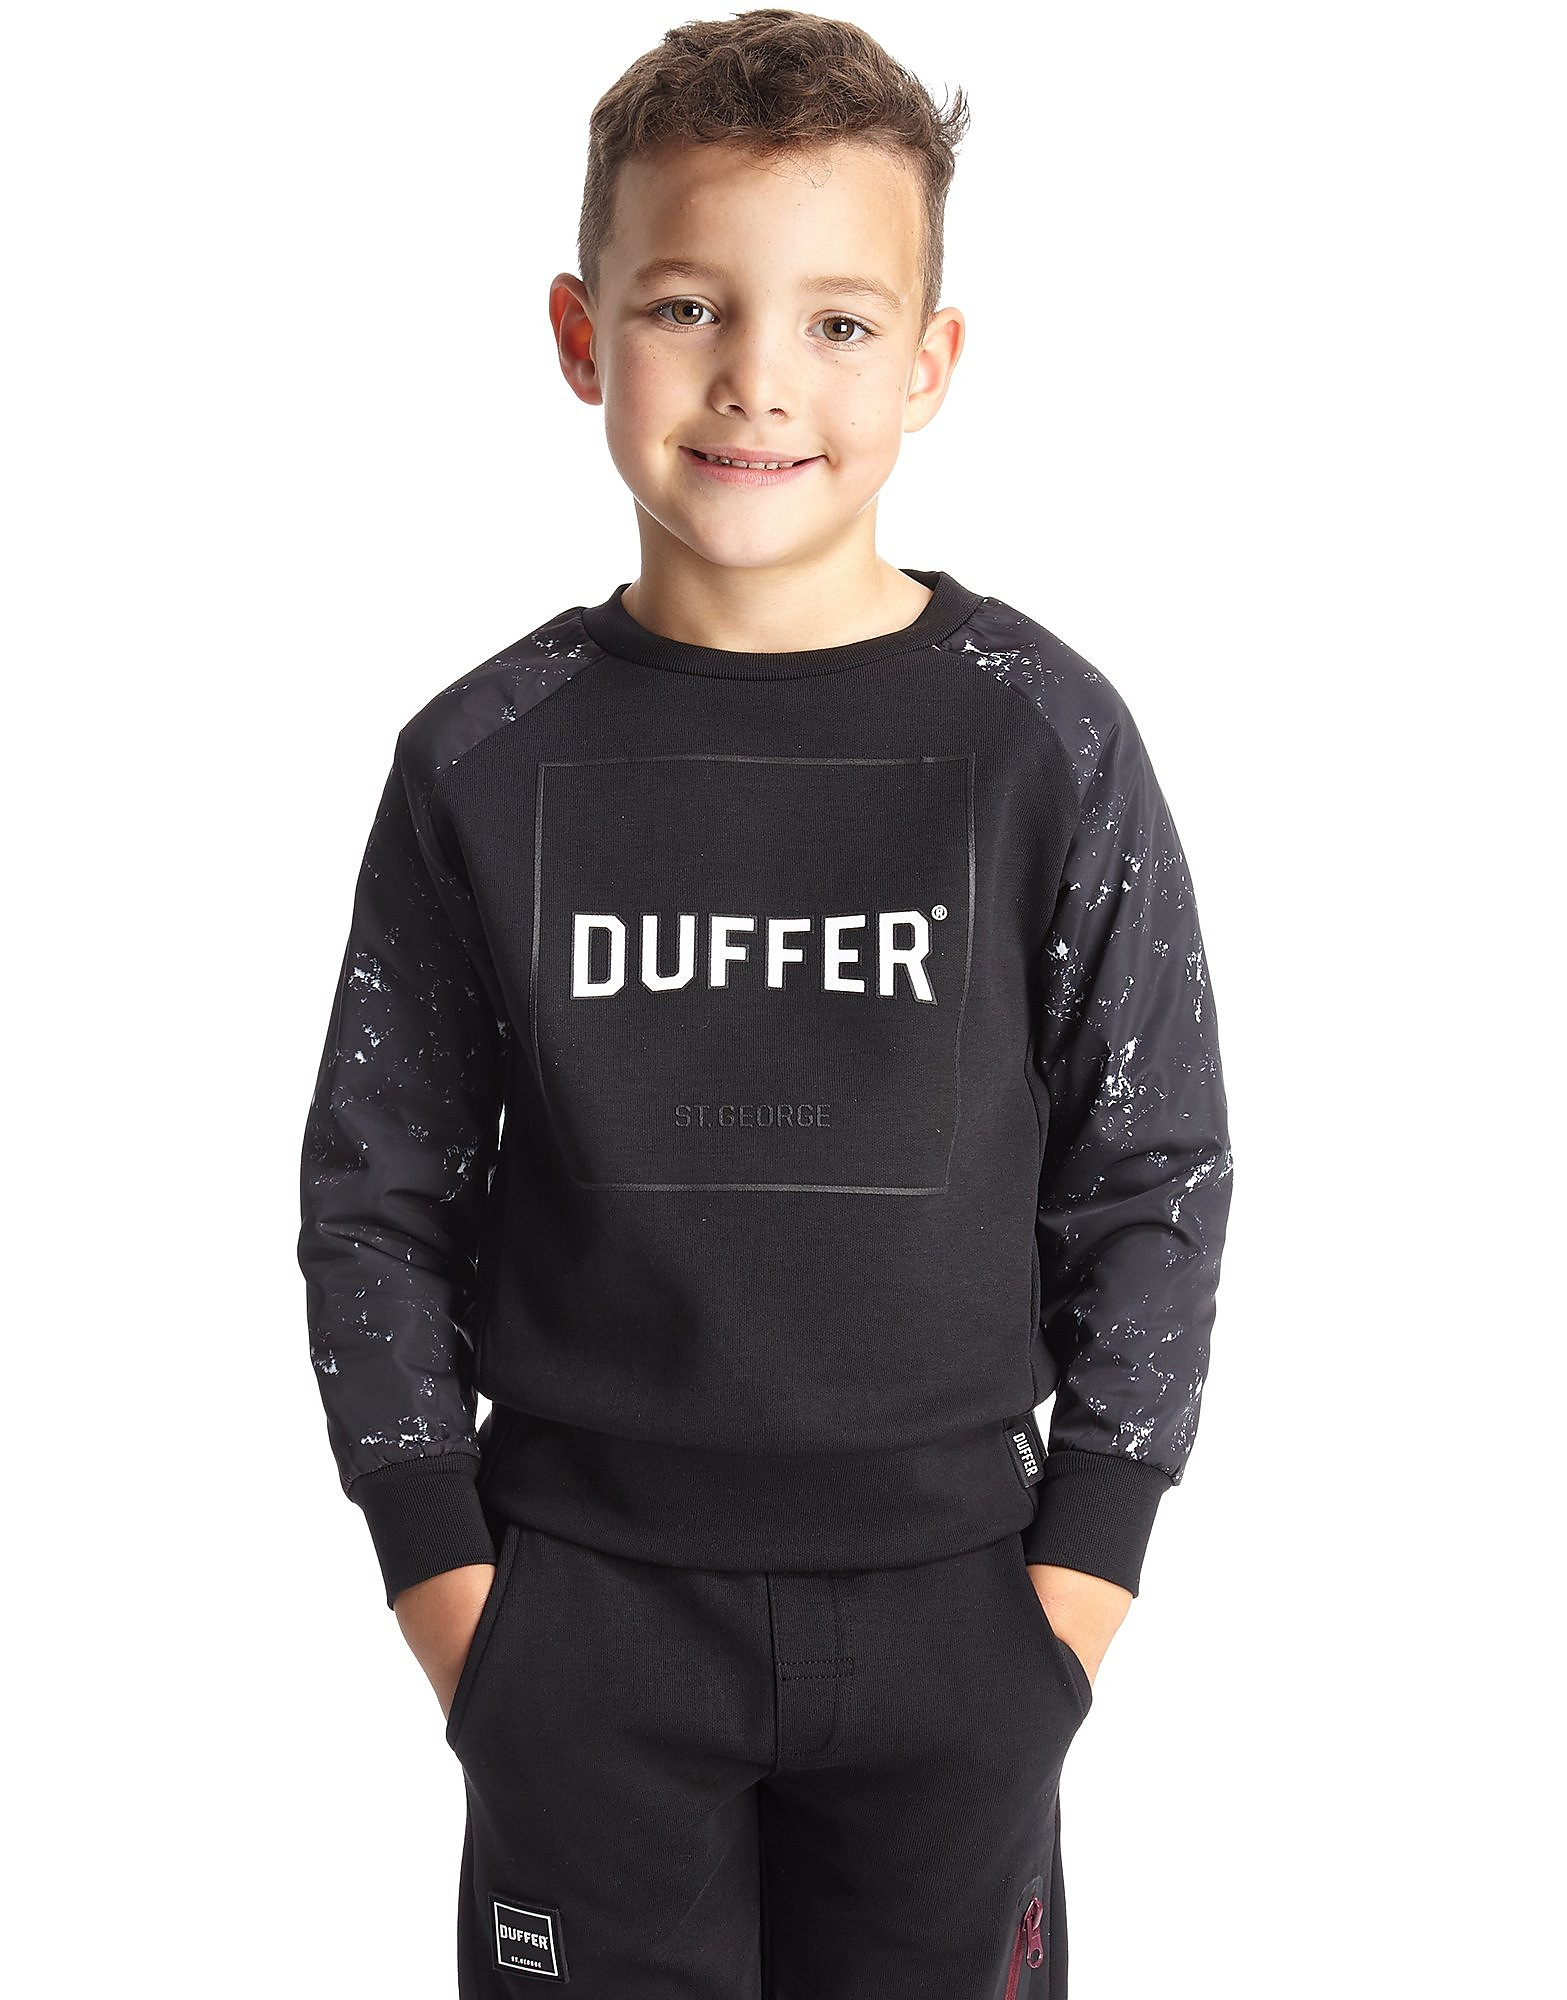 Duffer of St George West Crew Neck Sweatshirt Children